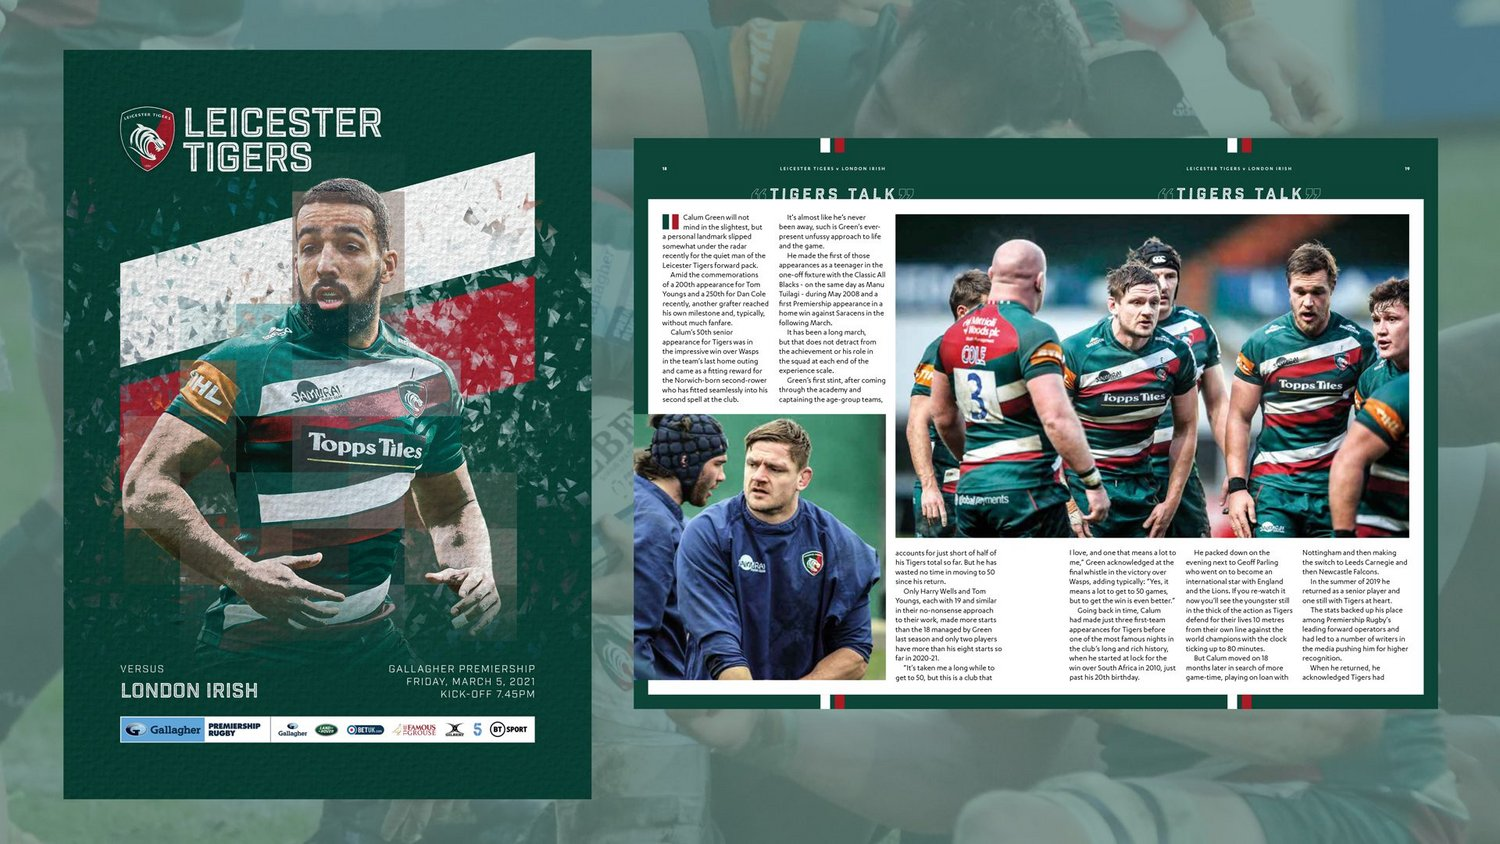 Leicester Tigers v London Irish 2020-21 - Digital Matchday Programme